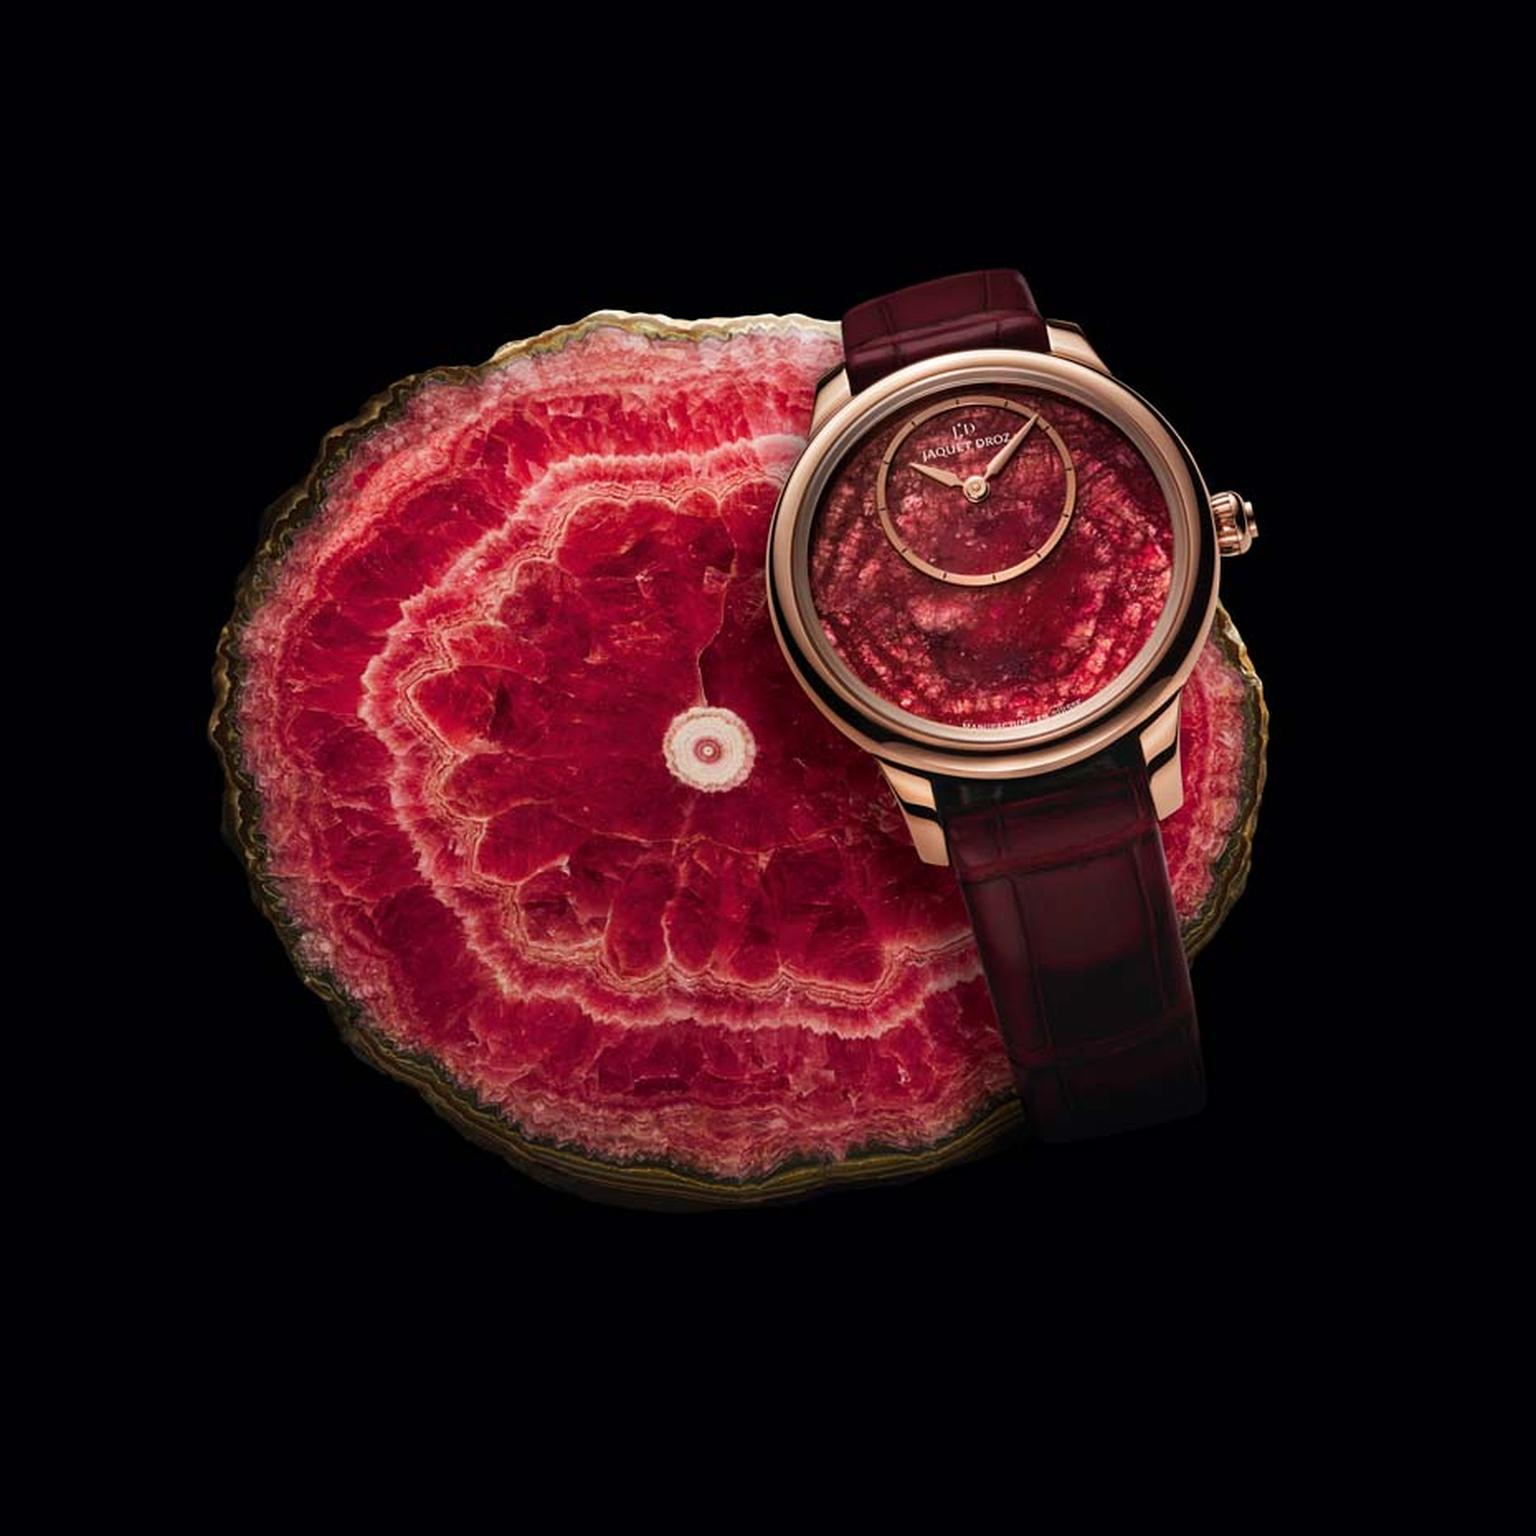 Jaquet Droz Minerals Collection Petite Heure Minute Ruby Heart watch.